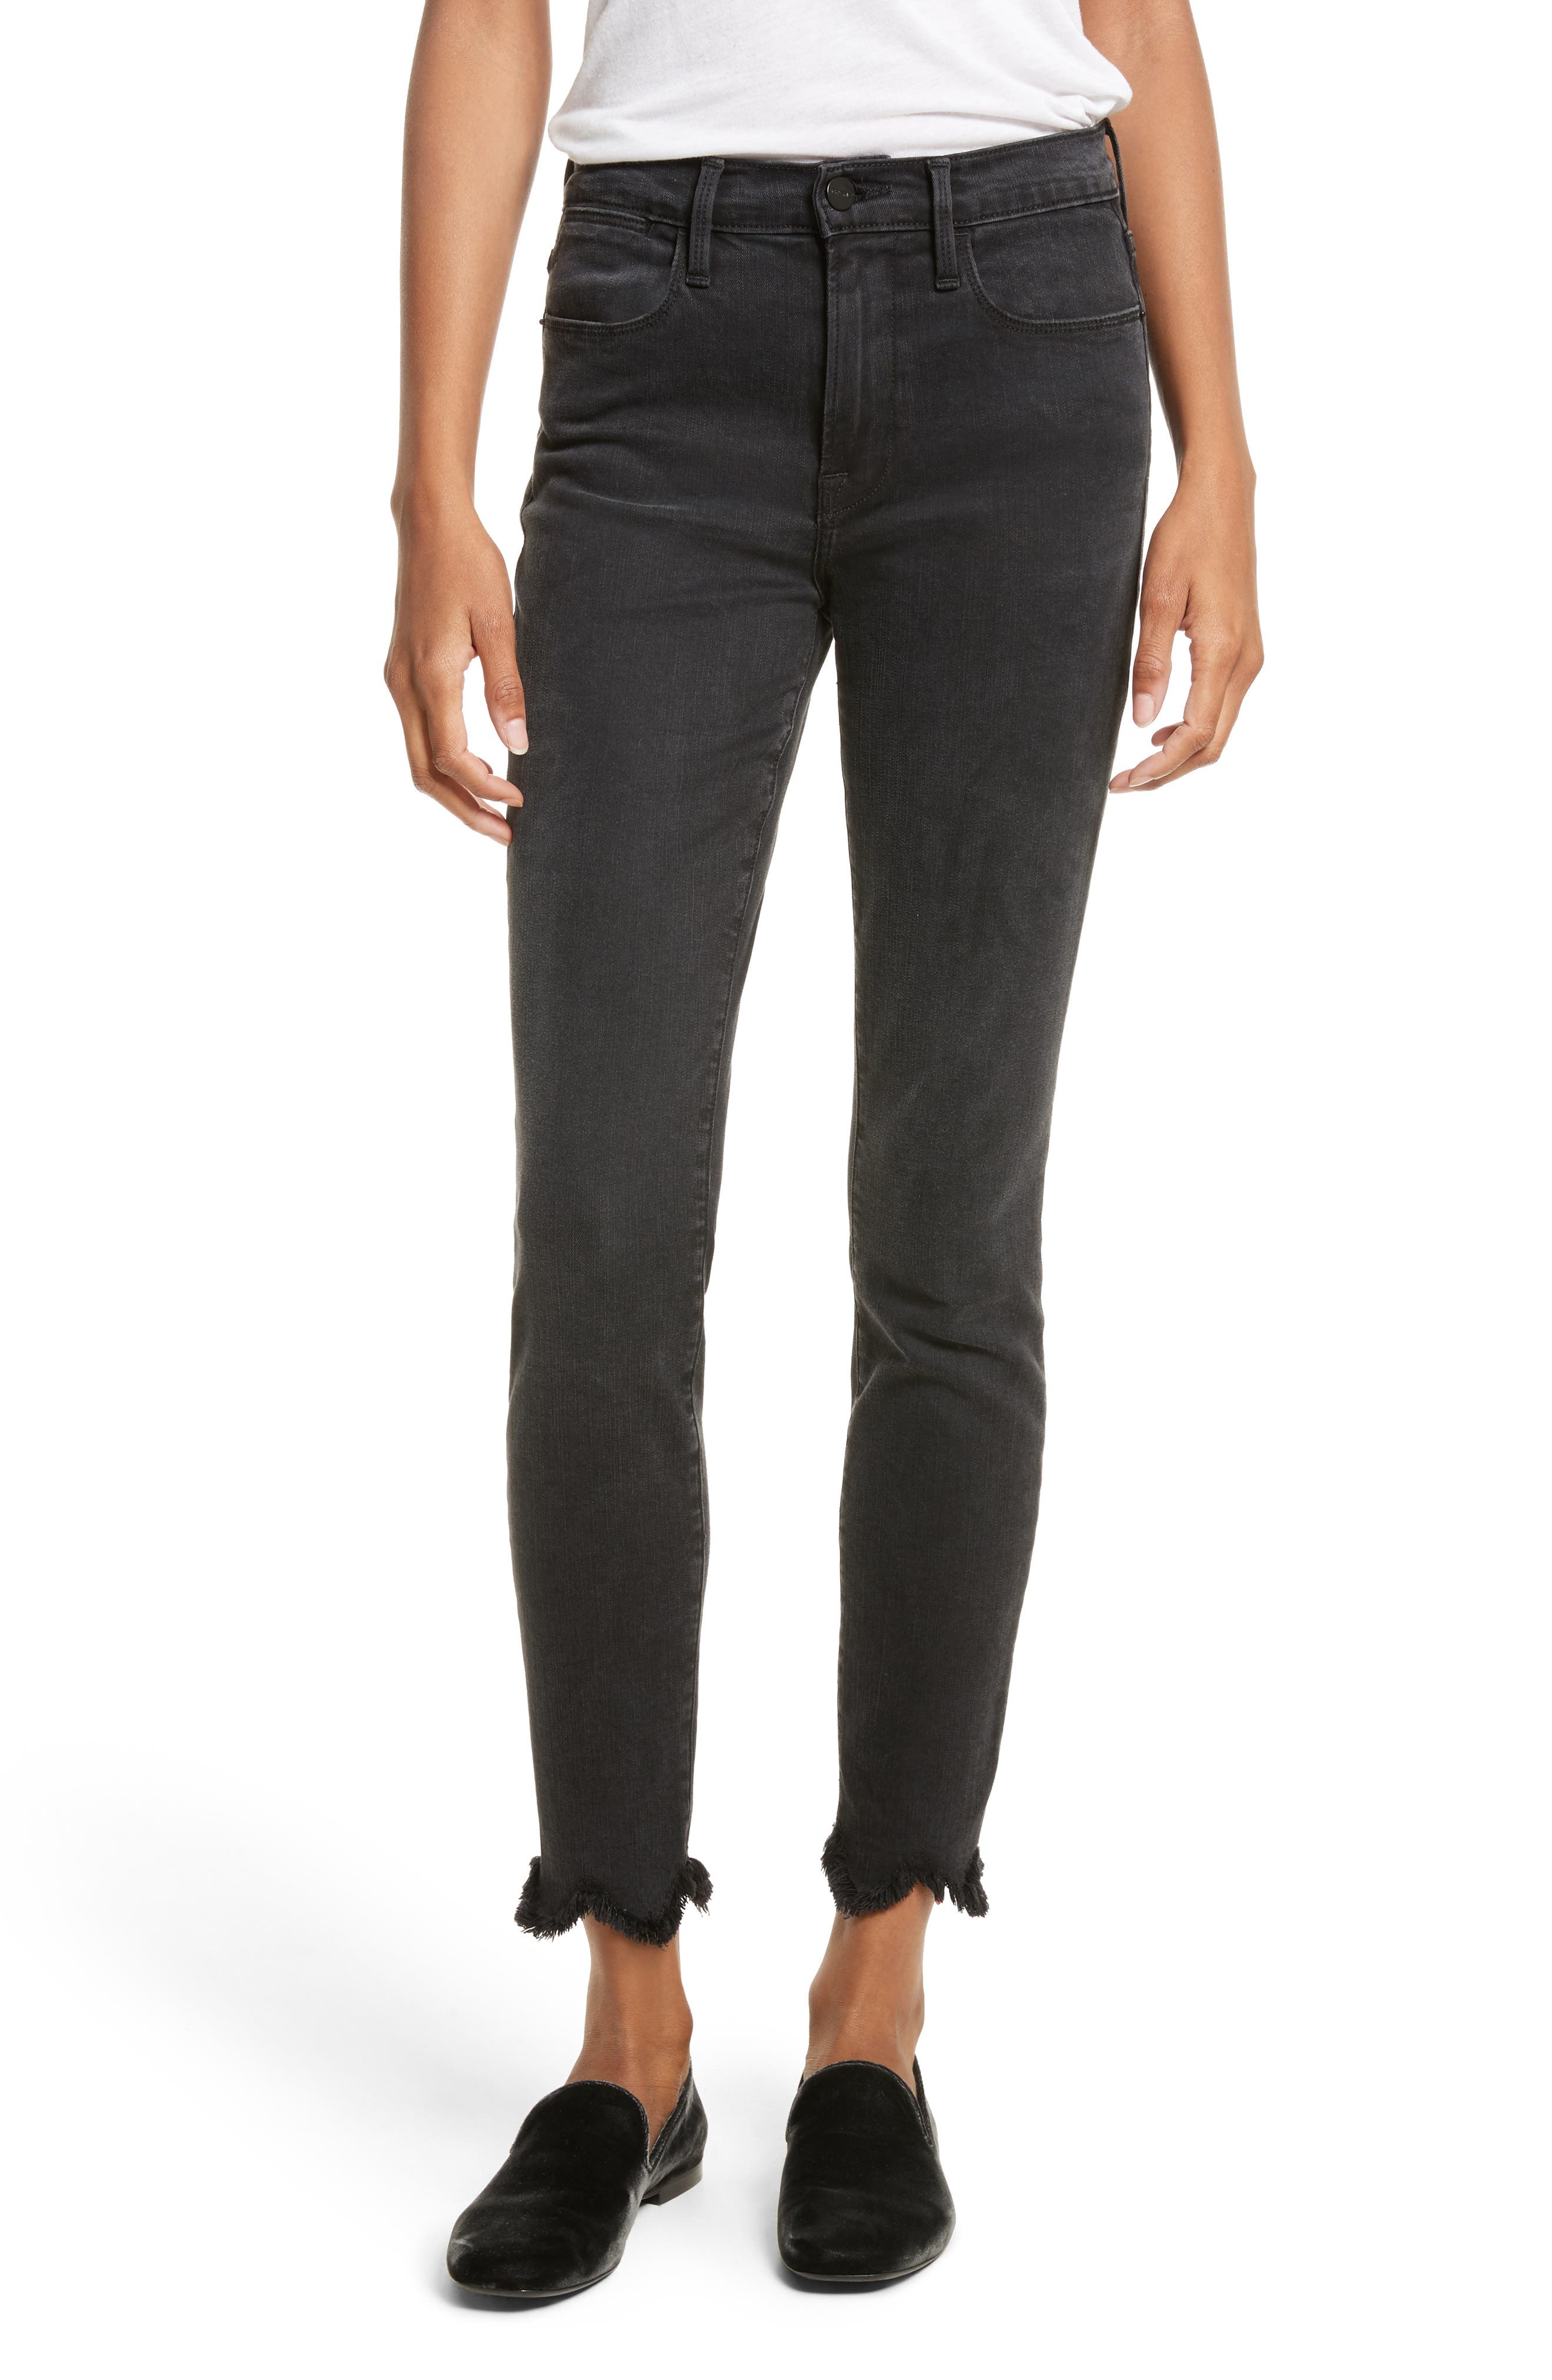 Main Image - FRAME Le High Frayed Ankle Skinny Jeans (Whittier)